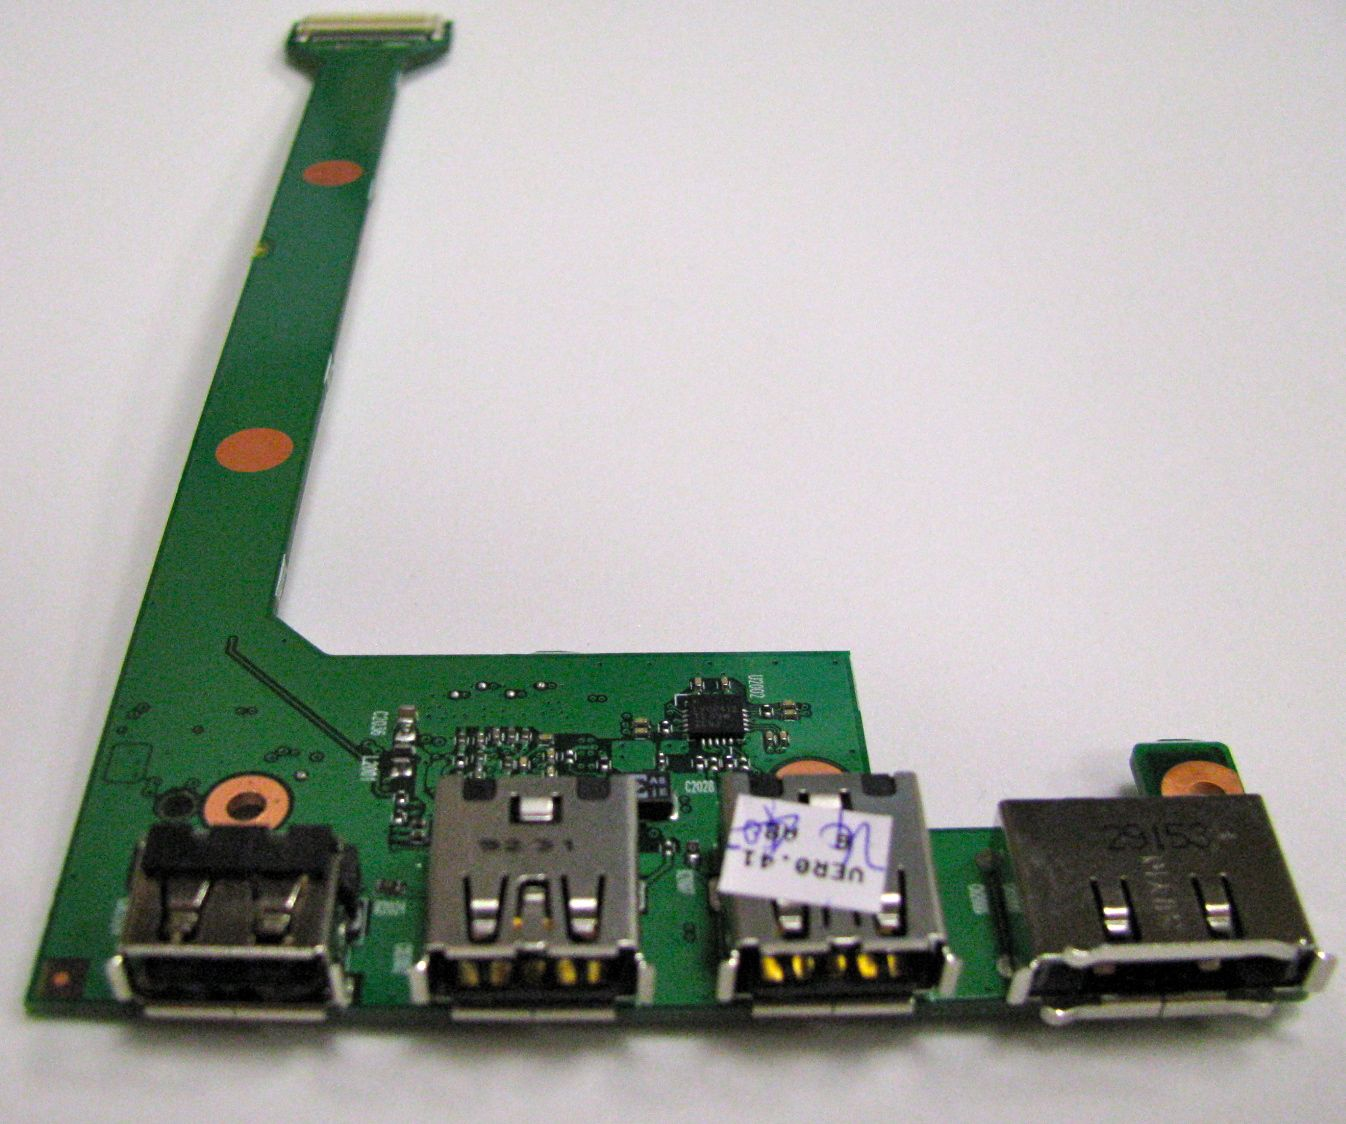 USB board - Includes cable